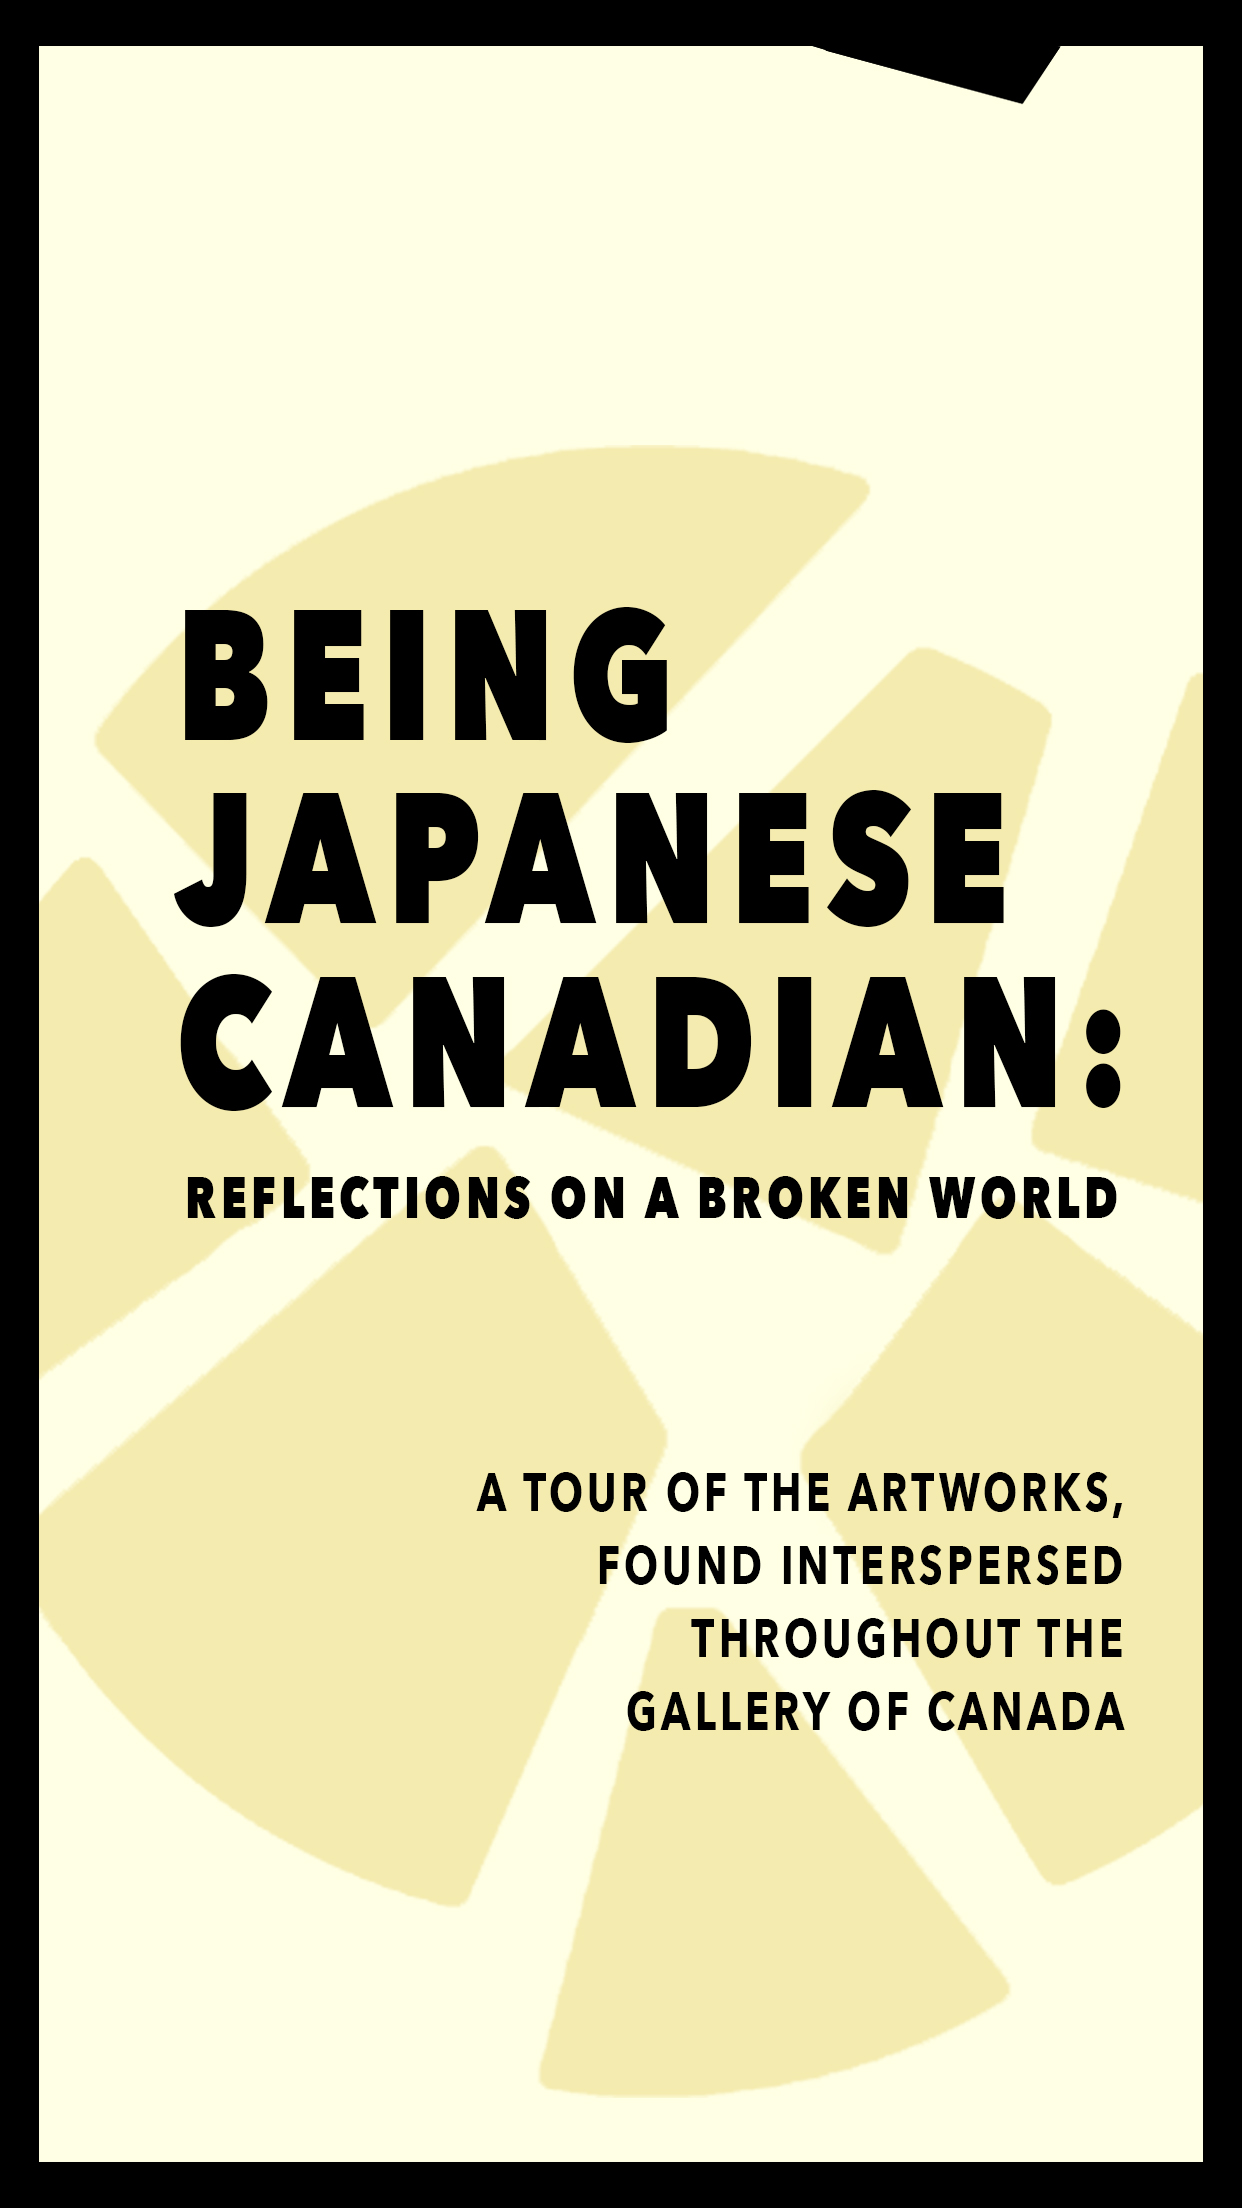 beingjapanesecanadian-00b.jpg